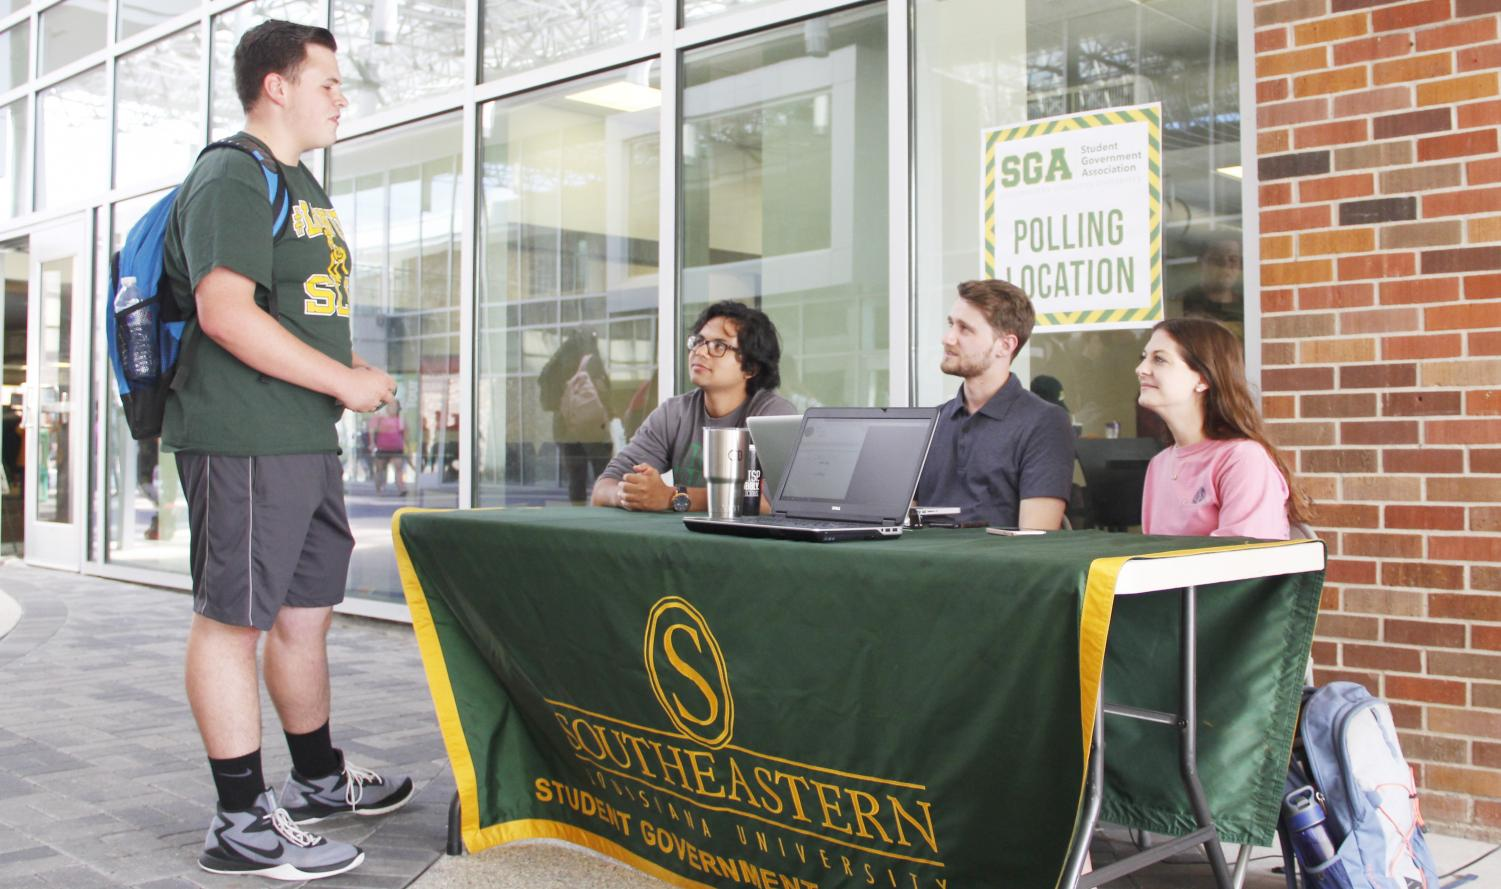 Polls for the Student Government Association's general election will open on April 8. Students can vote either at a polling station or on any device with internet access between then and April 11 at 4:30 p.m.